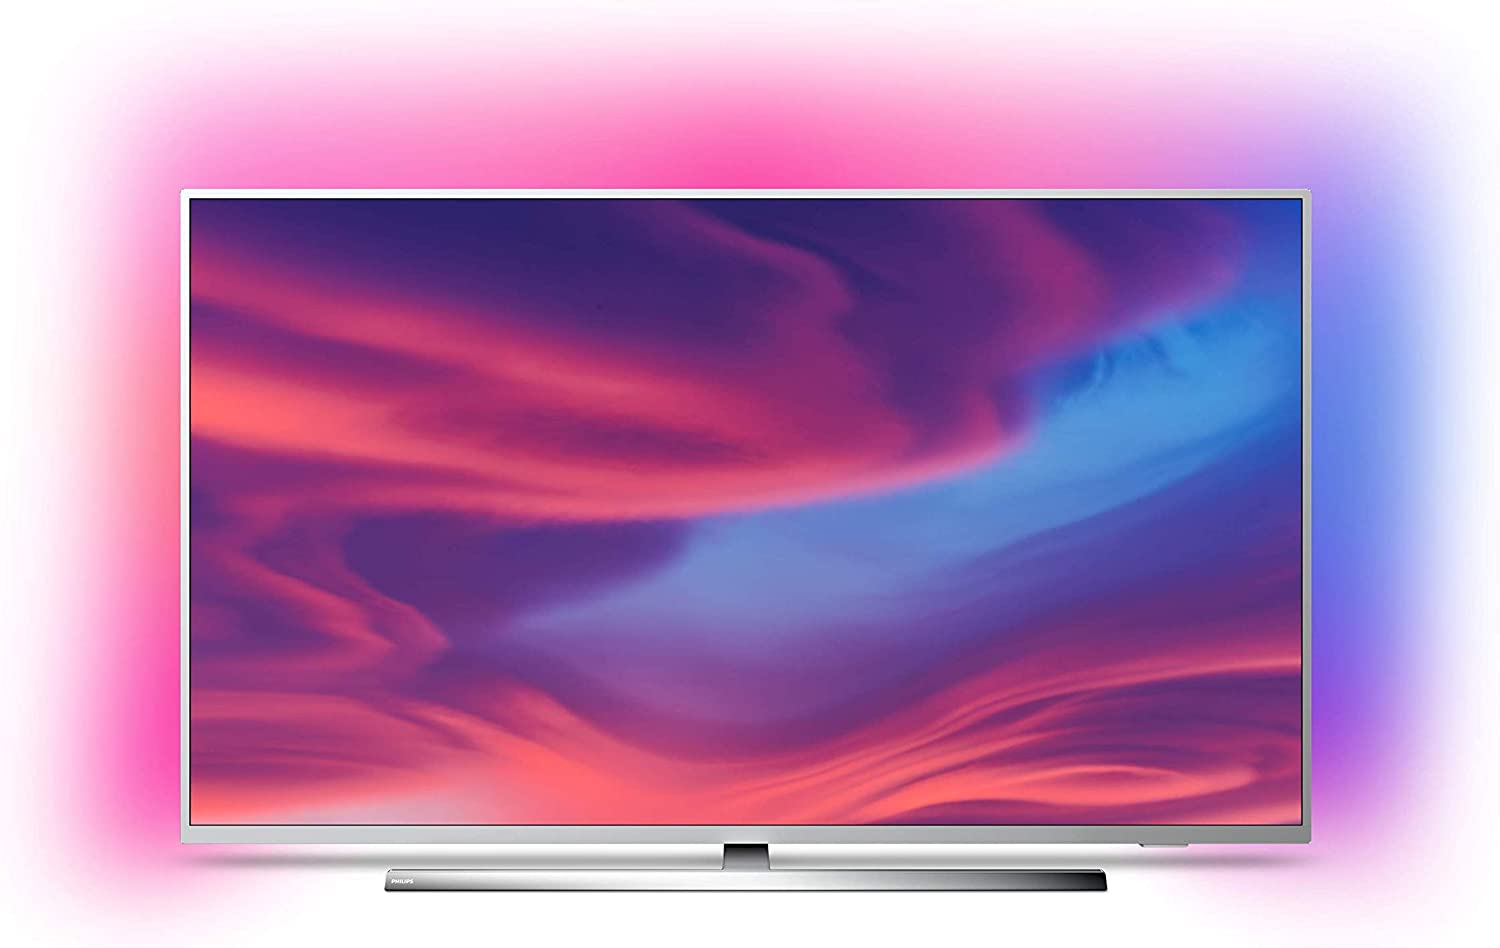 Philips Ambilight 65PUS7354 - Televisor Smart TV 4K UHD, 65 pulgadas, HDR10+, Android TV, Google Assistant y compatible Alexa, Dolby Vision/Atmos, peana central aluminio giratoria, color gris: Philips: Amazon.es: Electrónica